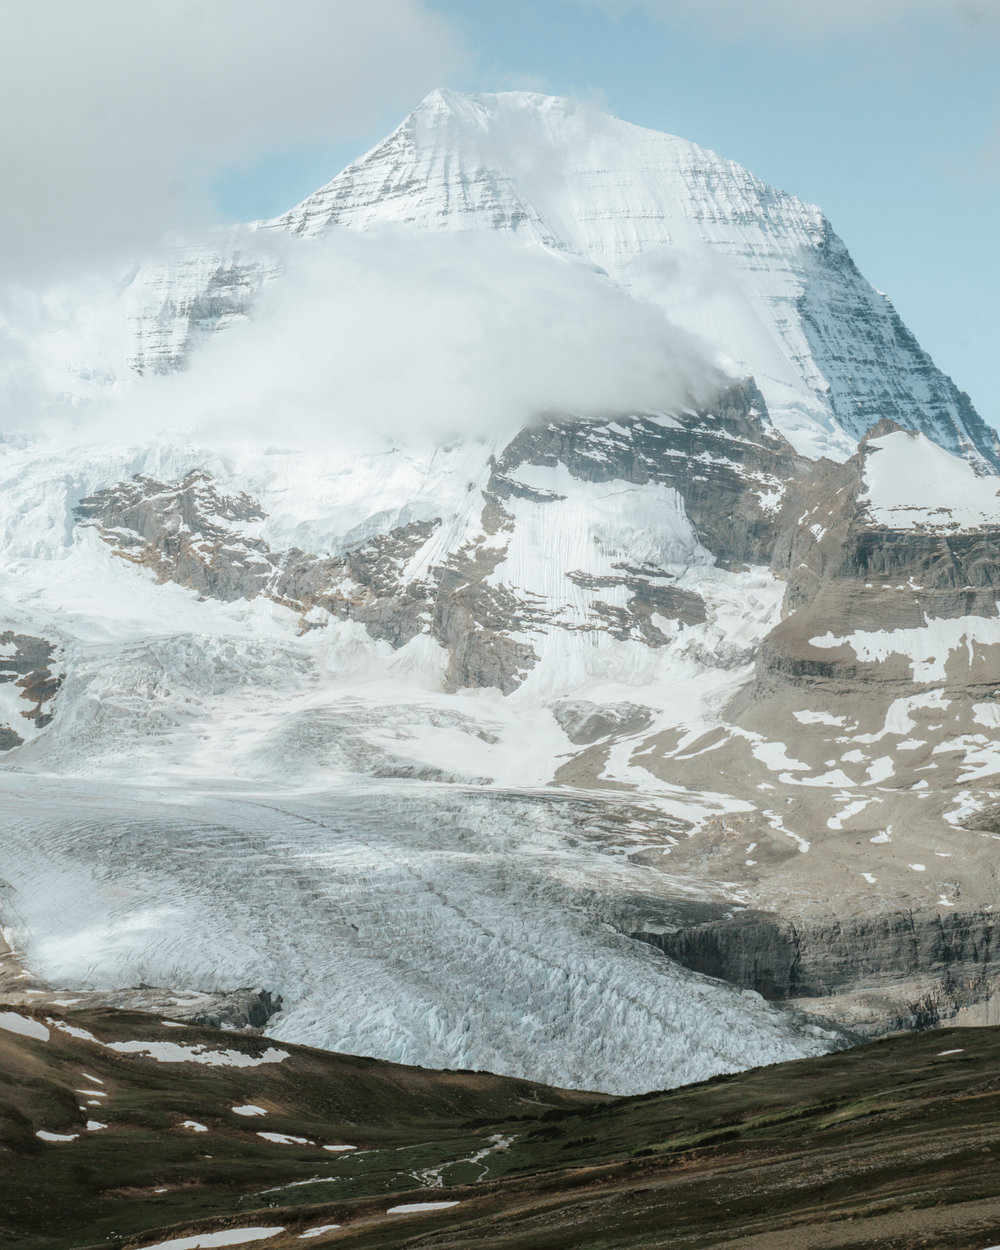 The view of Mount Robson from Snowbird Pass.